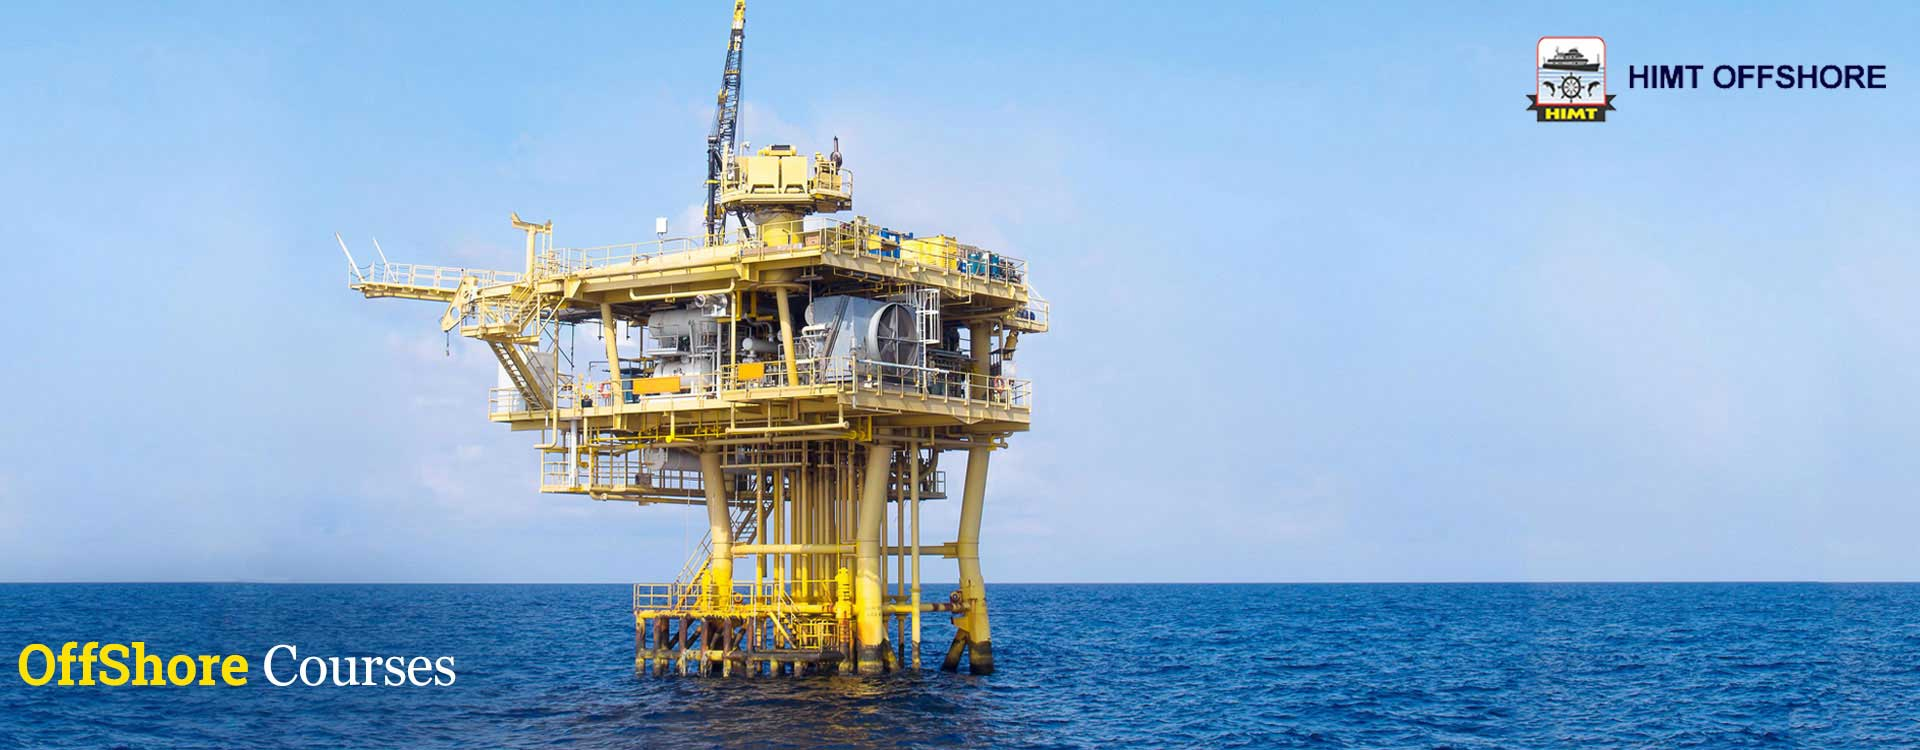 HIMT Offshore training, Offshore Courses, HIMT college